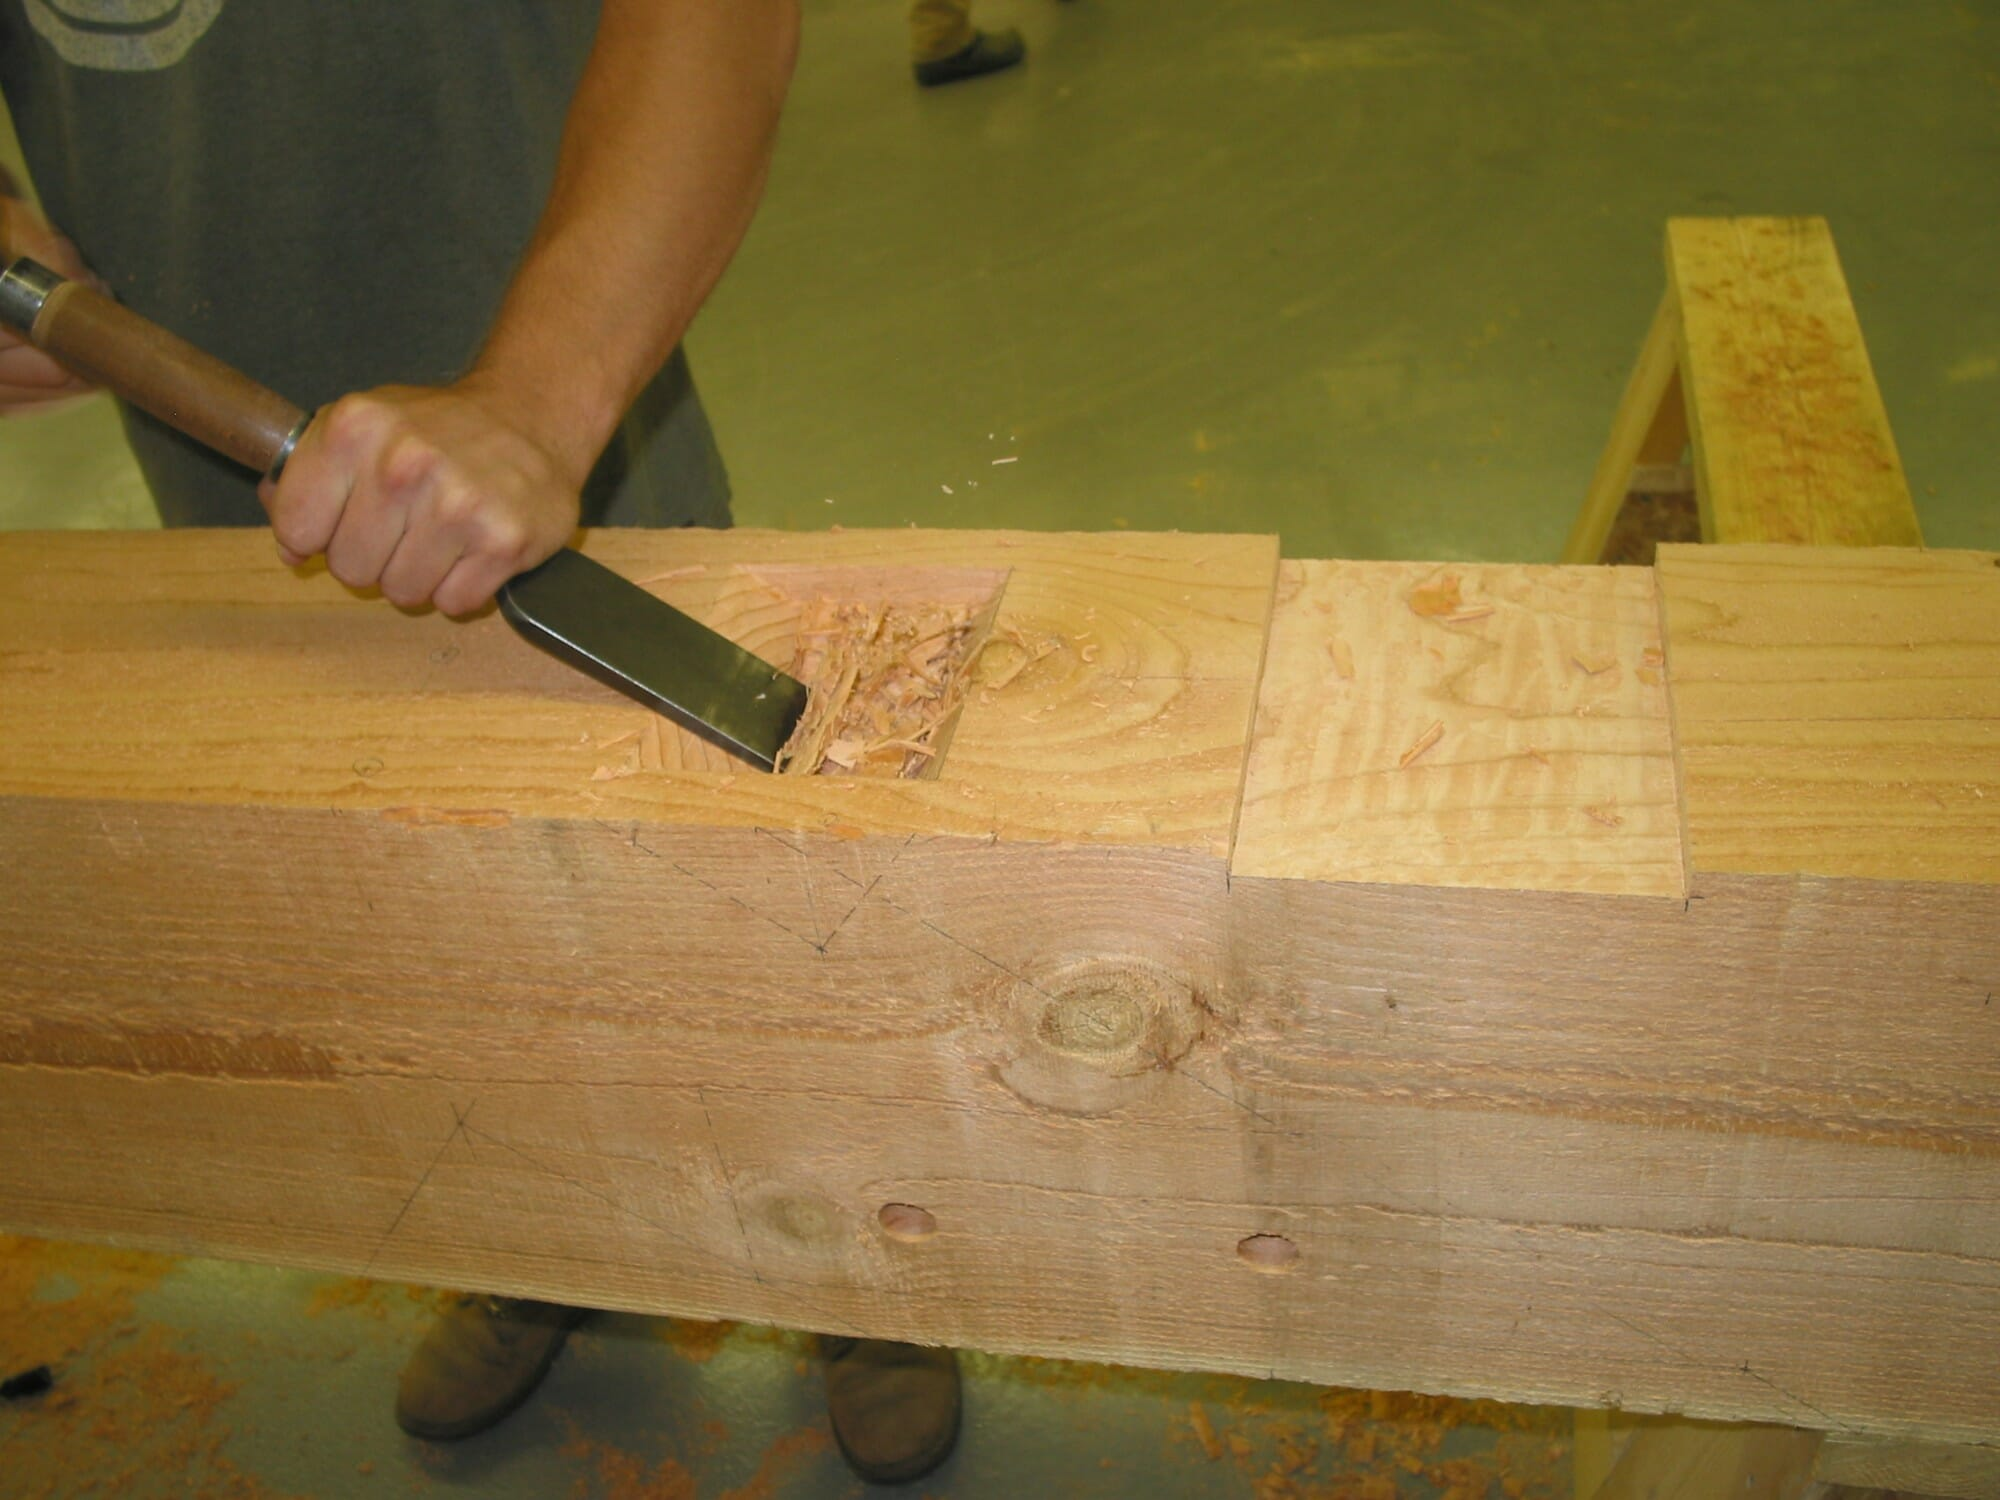 Chiseling out a pocket in a timber